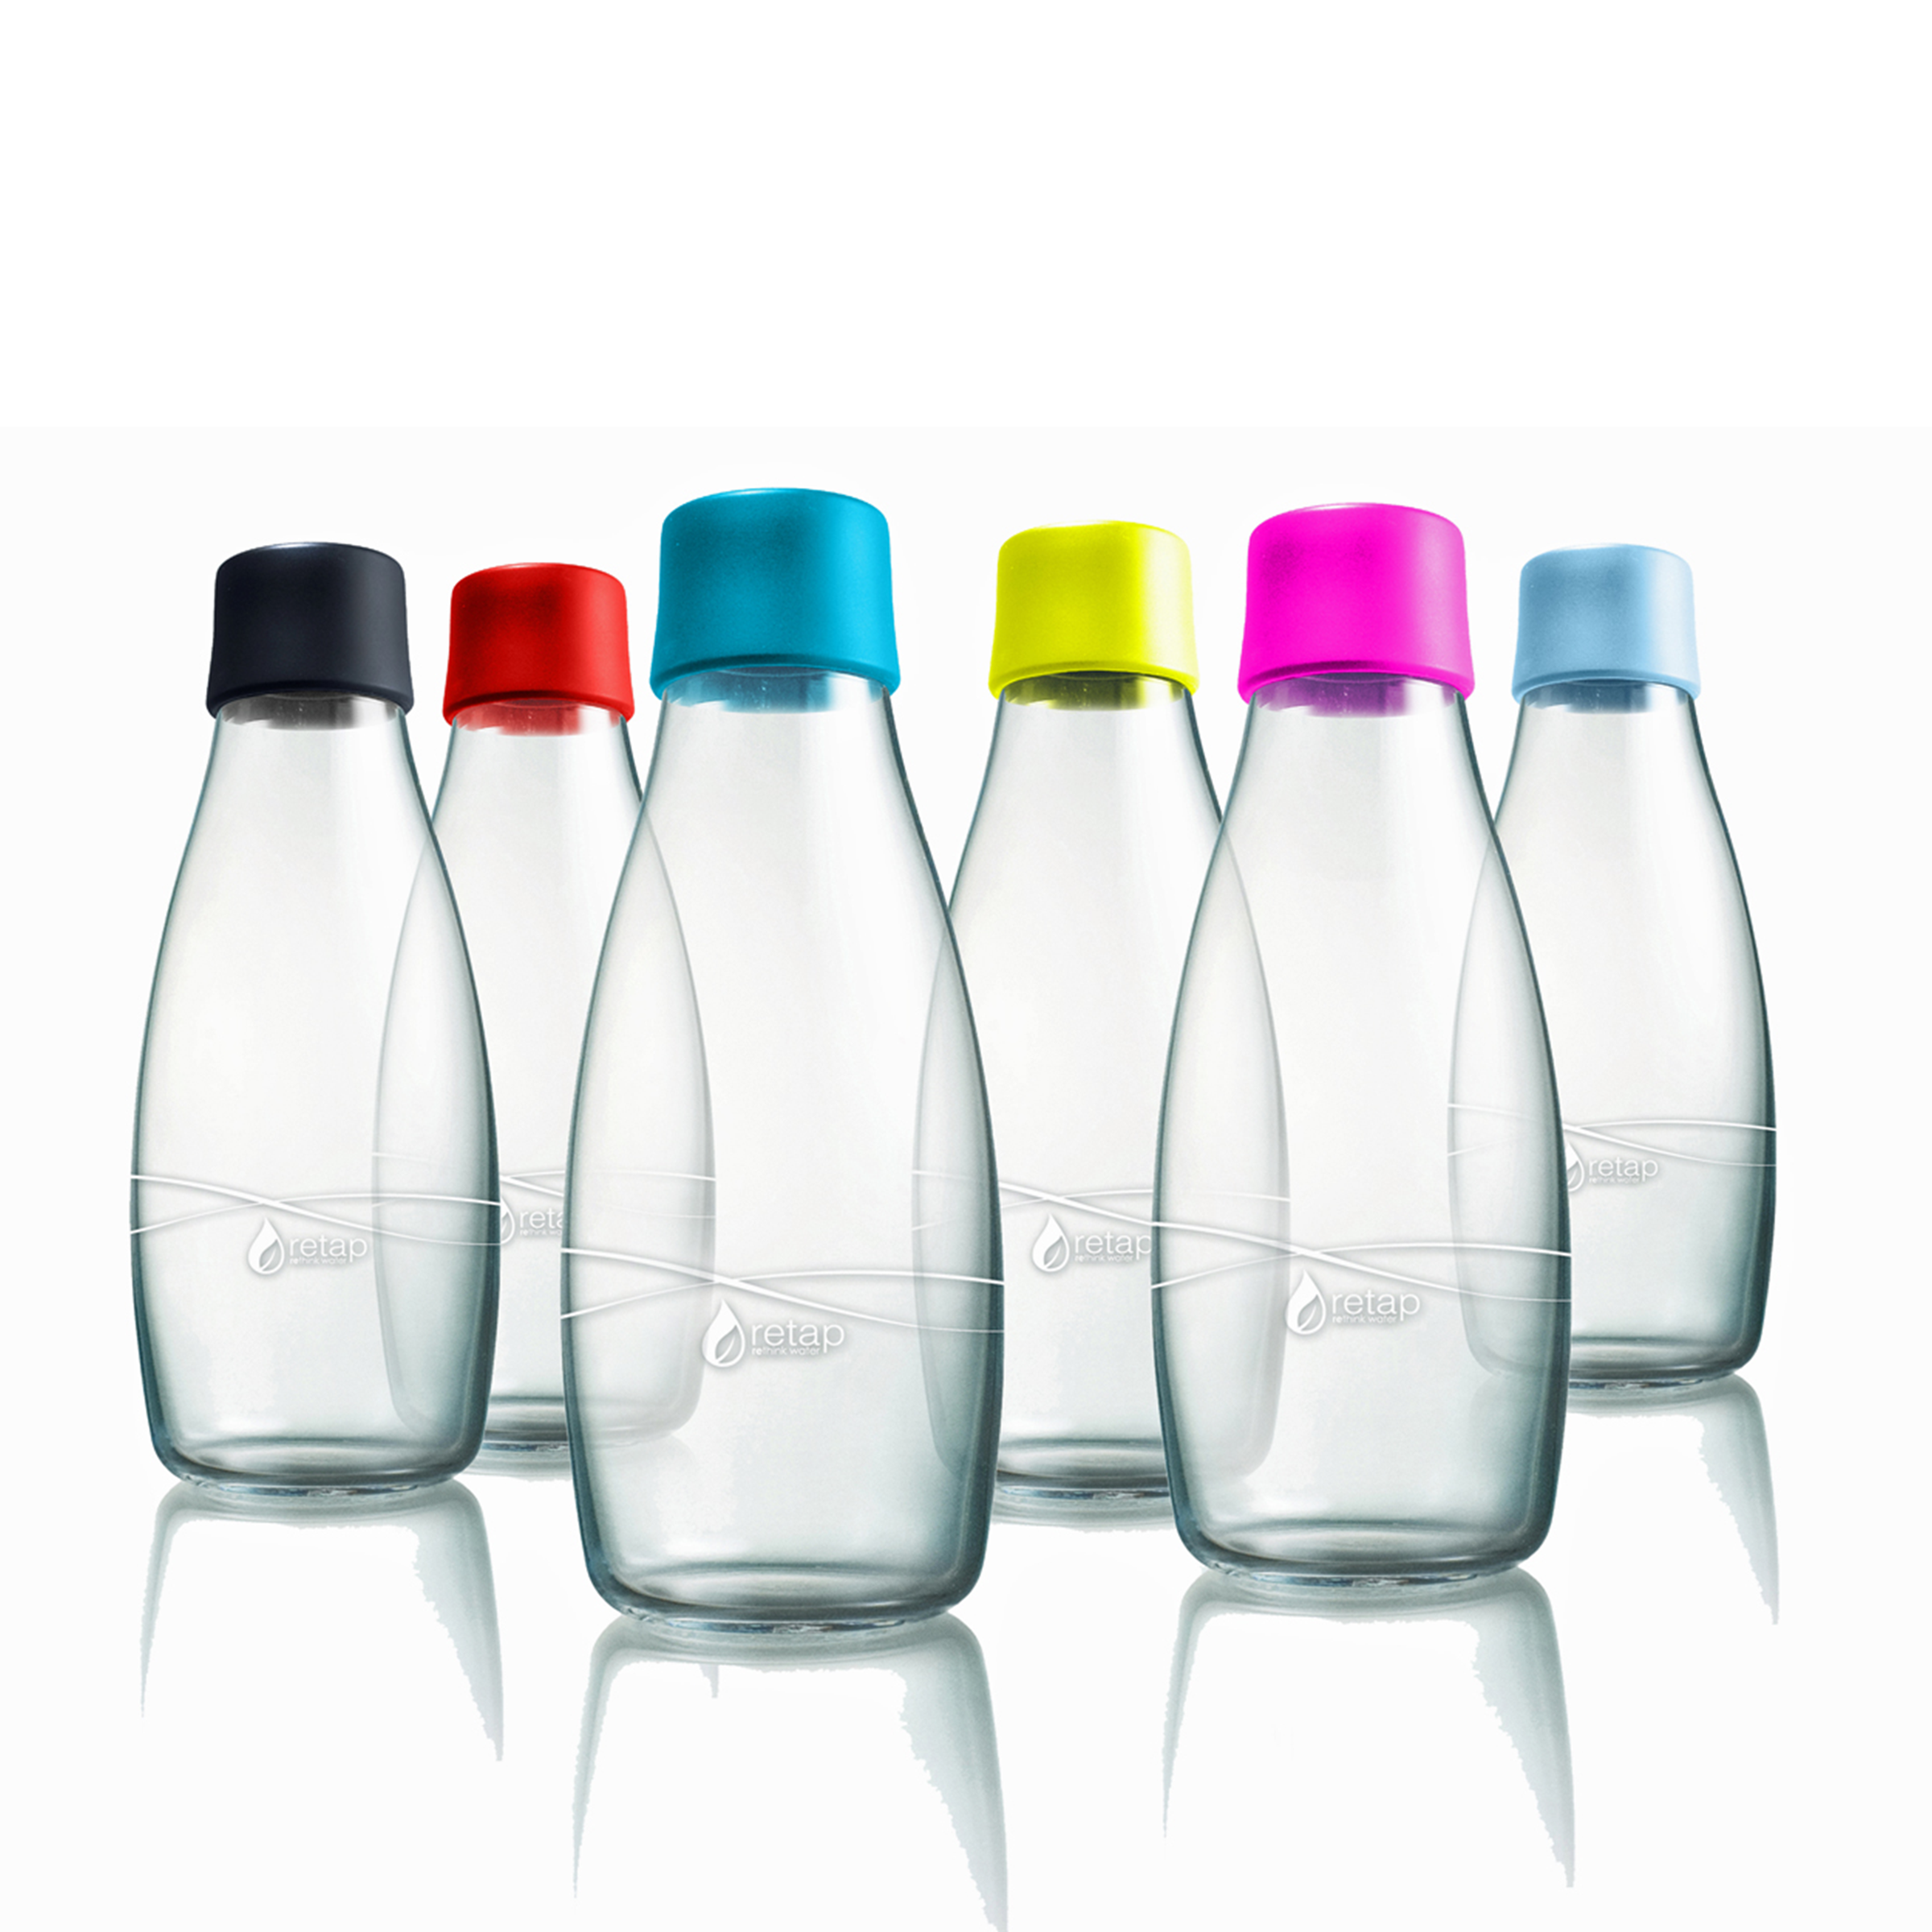 Designapplause Retap Bottle